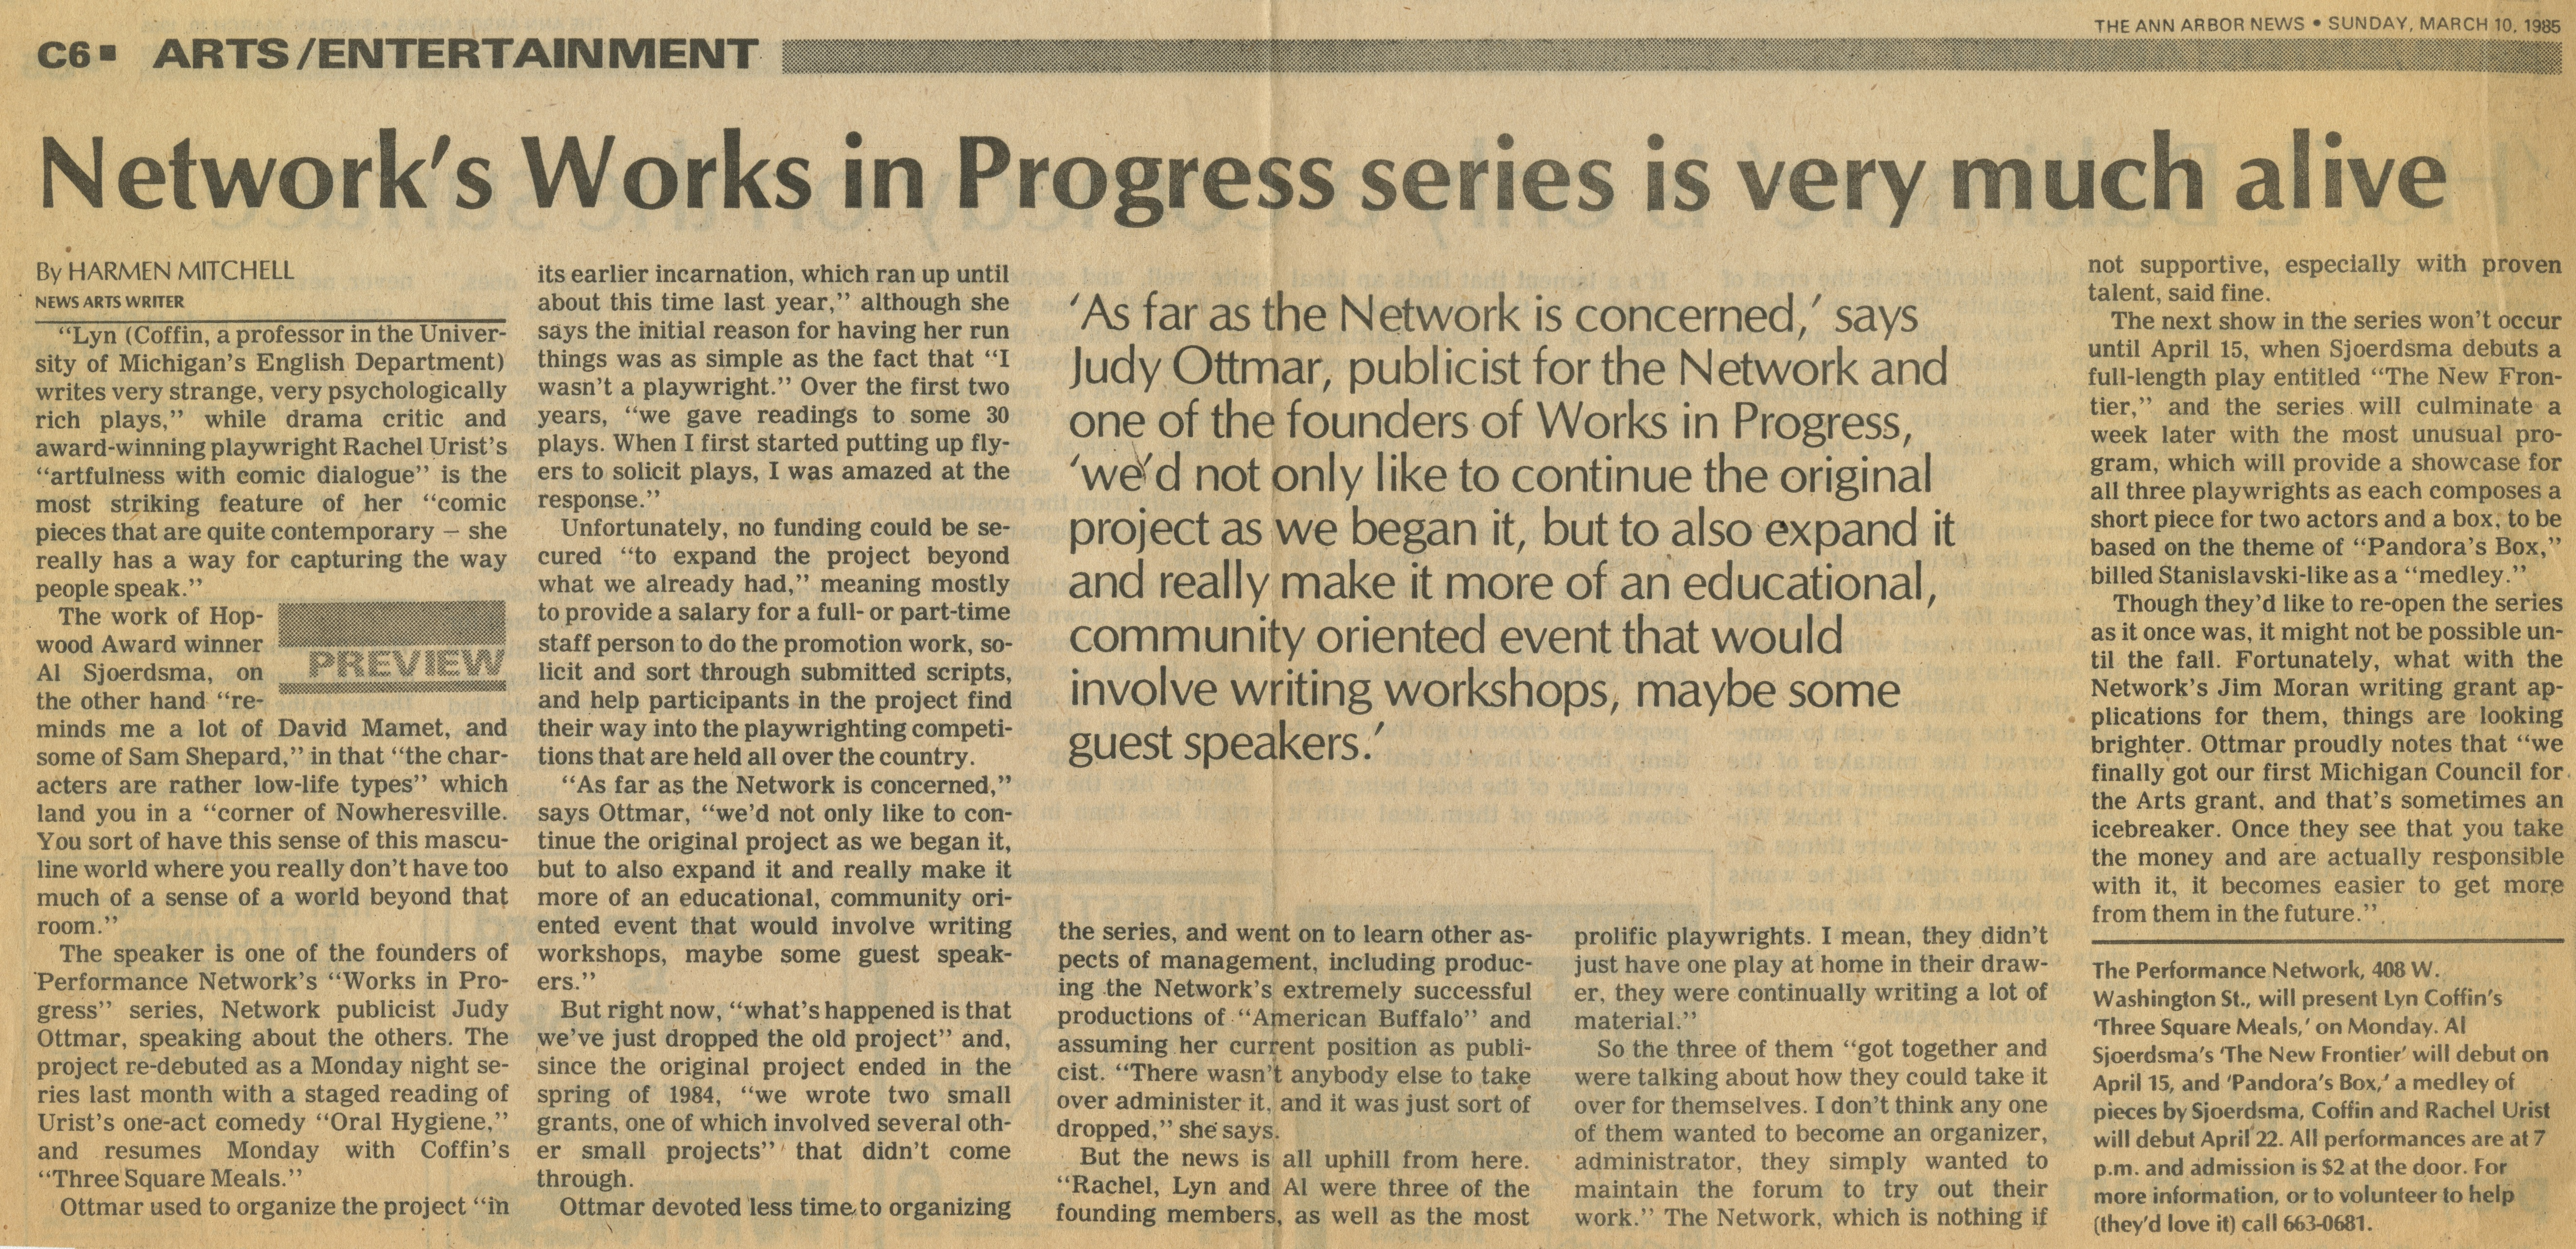 Network's Works in Progress series is very much alive image